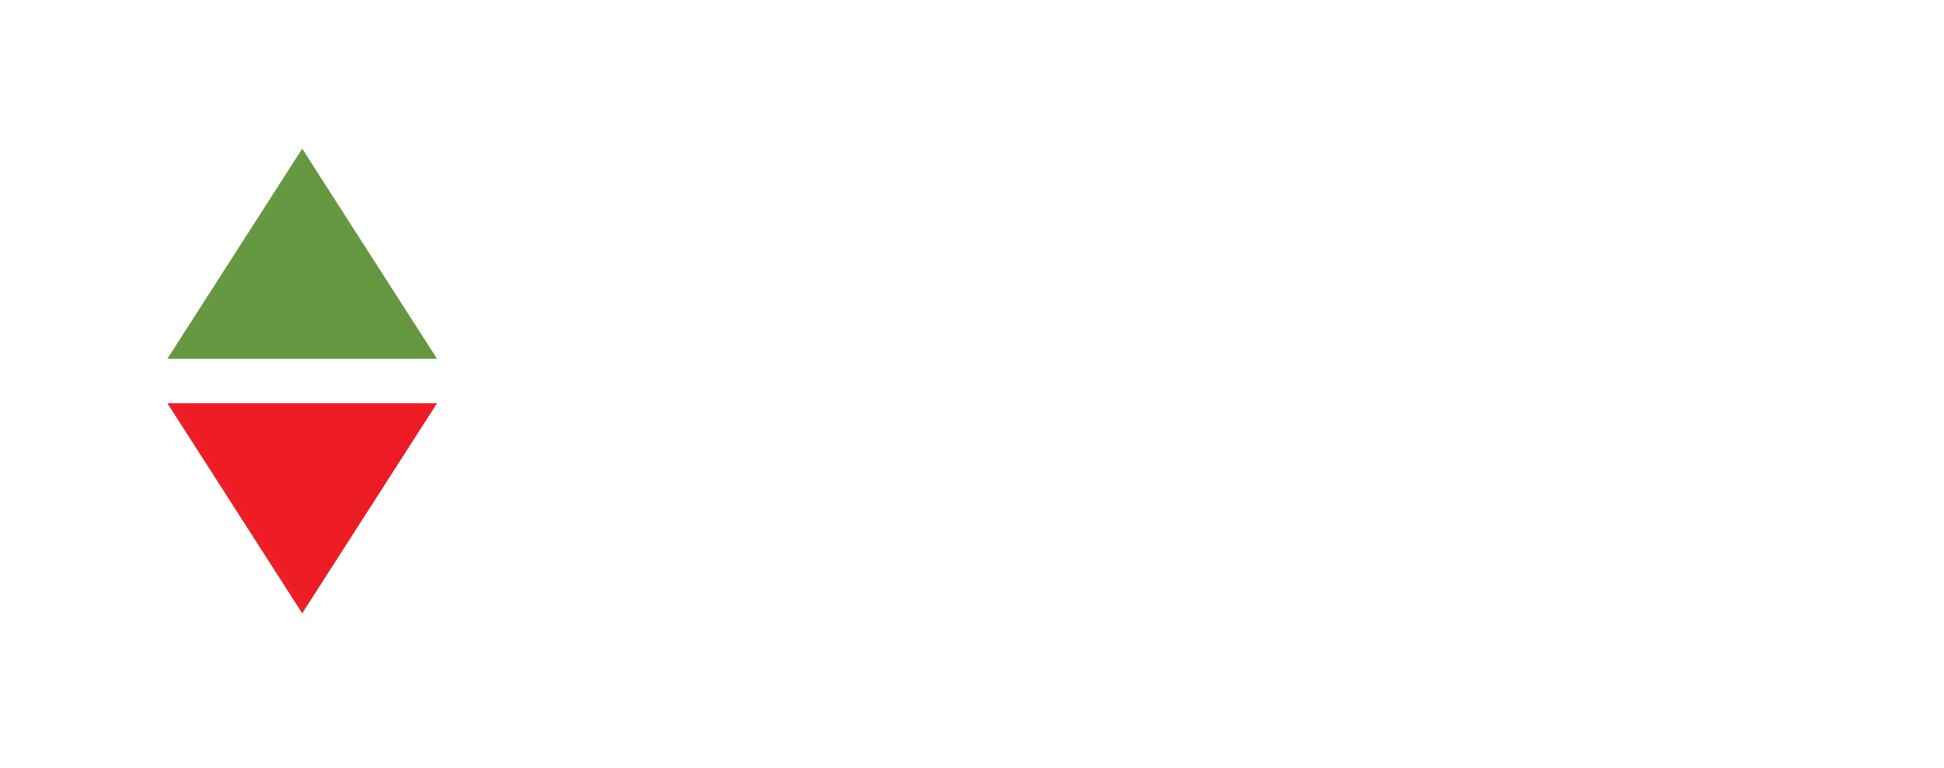 SFES Corp